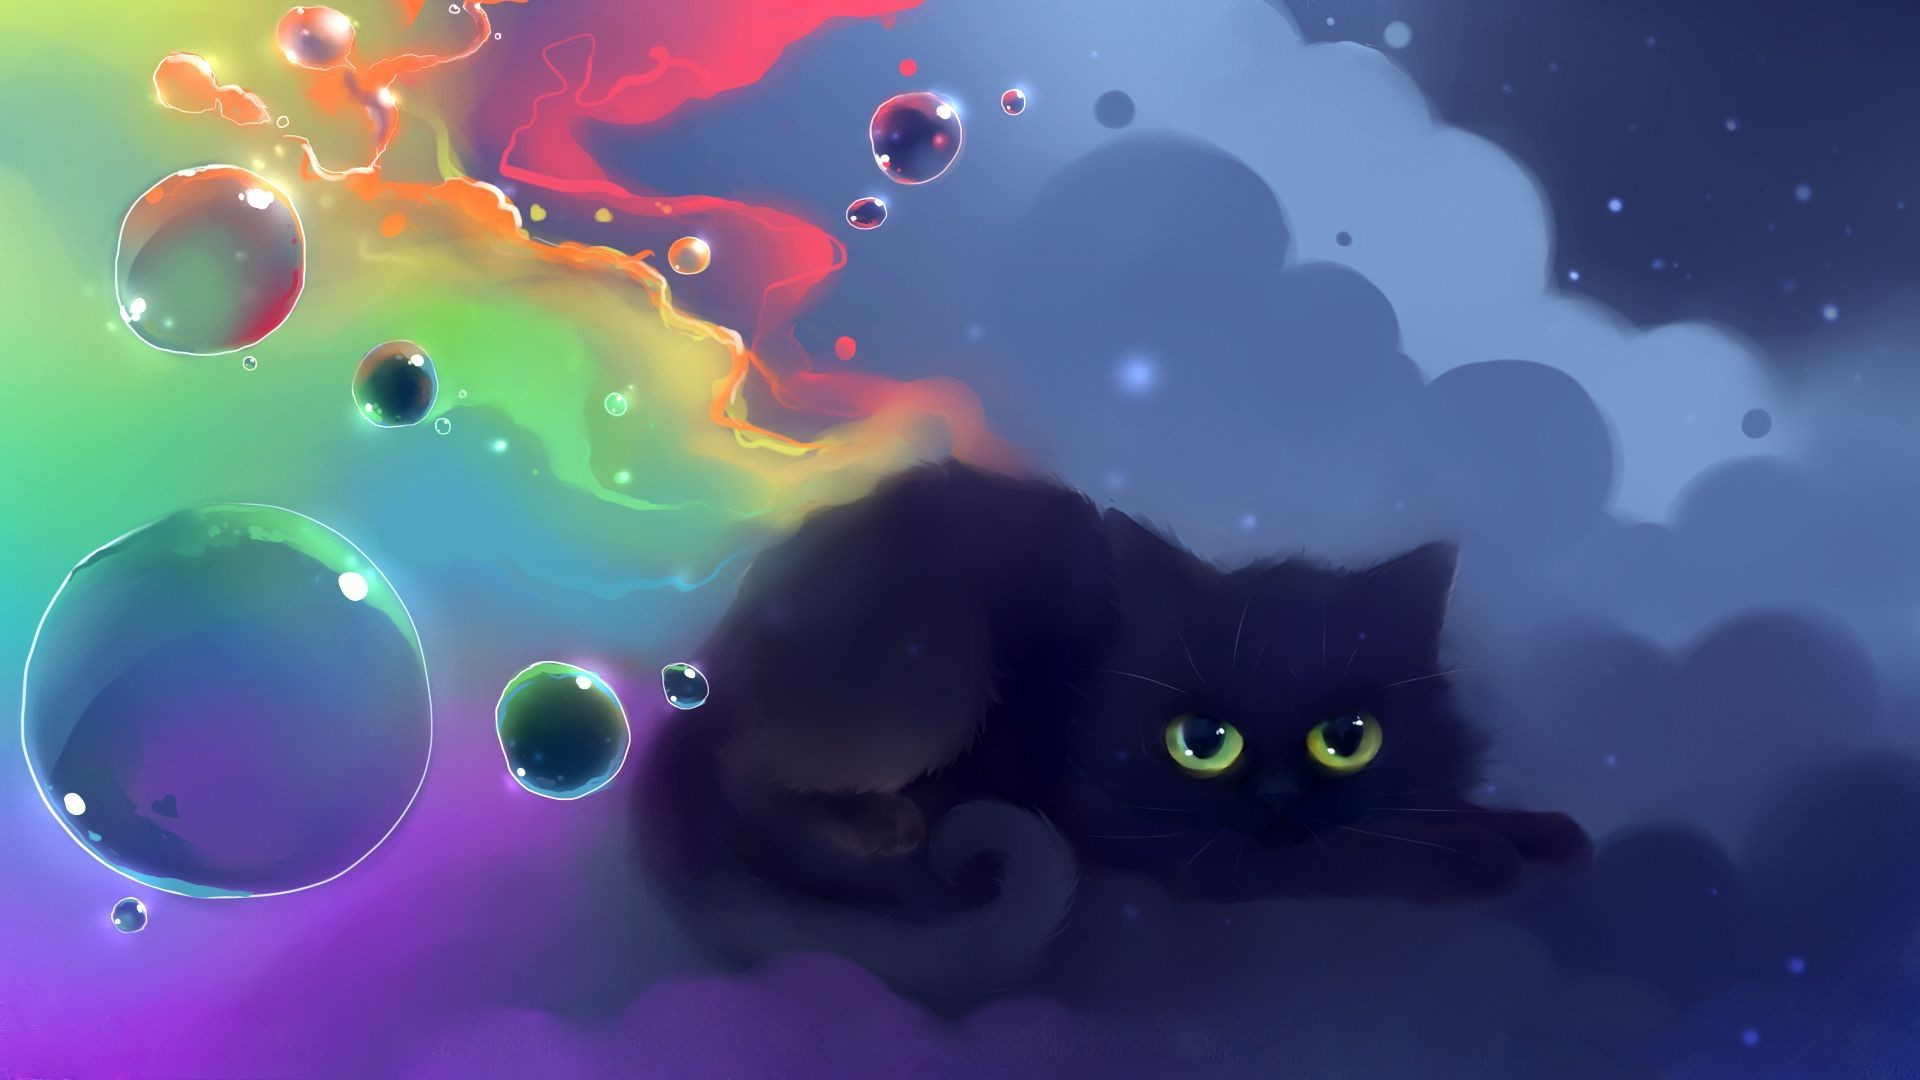 Cute Cat Hd Wallpapers For Mobile Warrior Cat Wallpapers Backgrounds 56 Images